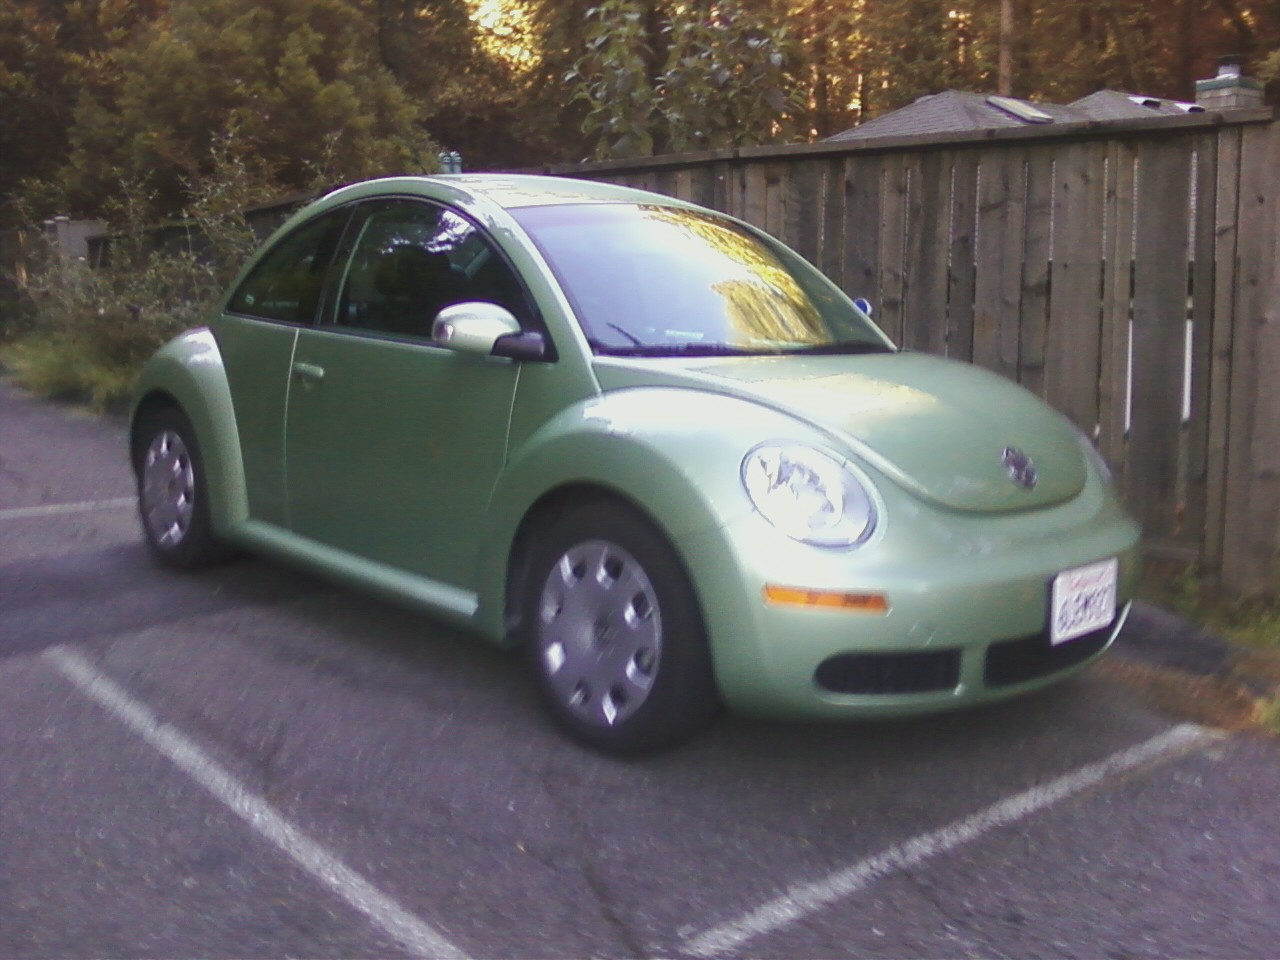 Punch Buggy Car >> Punch Buggy Green No Punch Back Snapshots And Sojourns